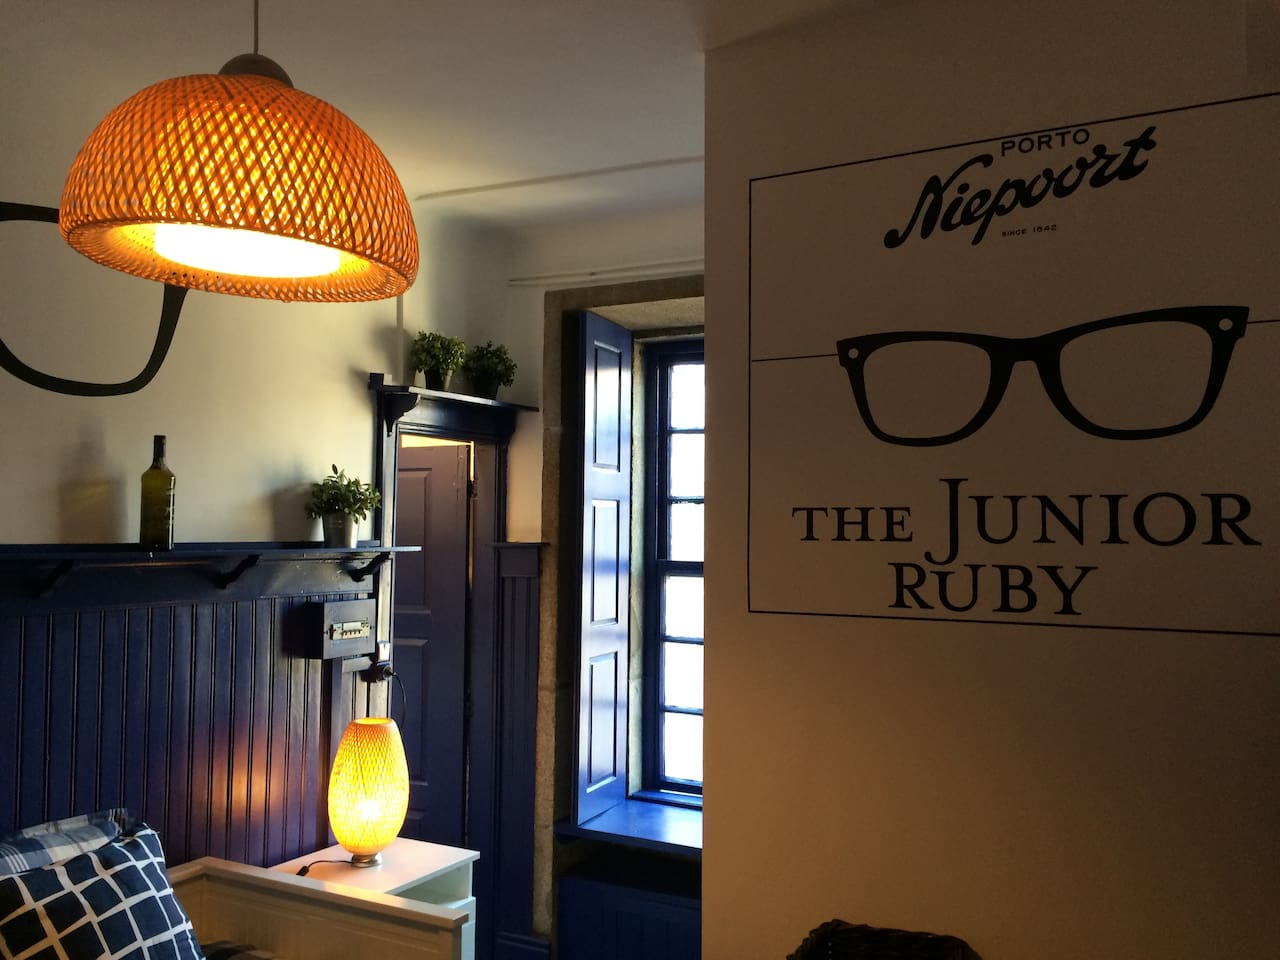 THE JUNIOR RUBY by ALL IN PORTO